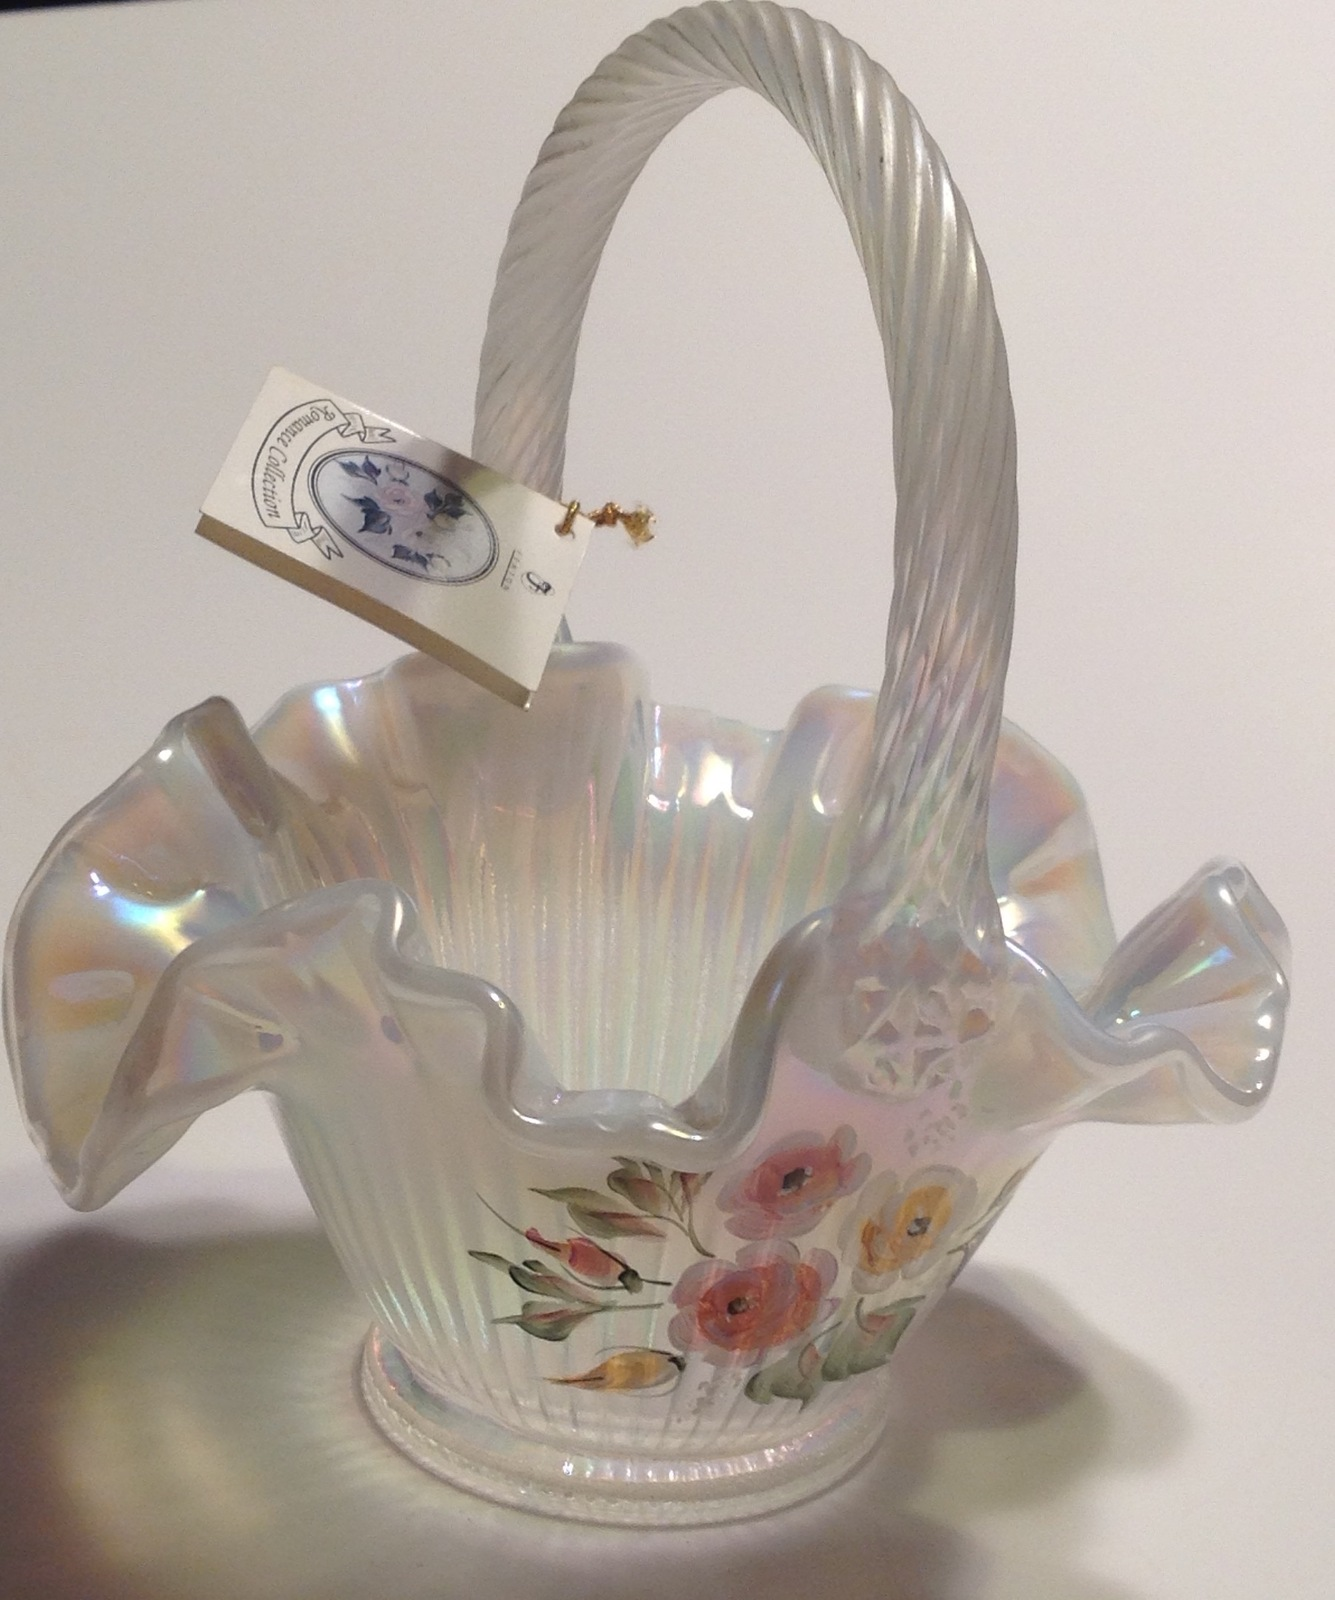 Fenton Opalescent Glass Basket Artist Signed Mackay Hand Painted image 6